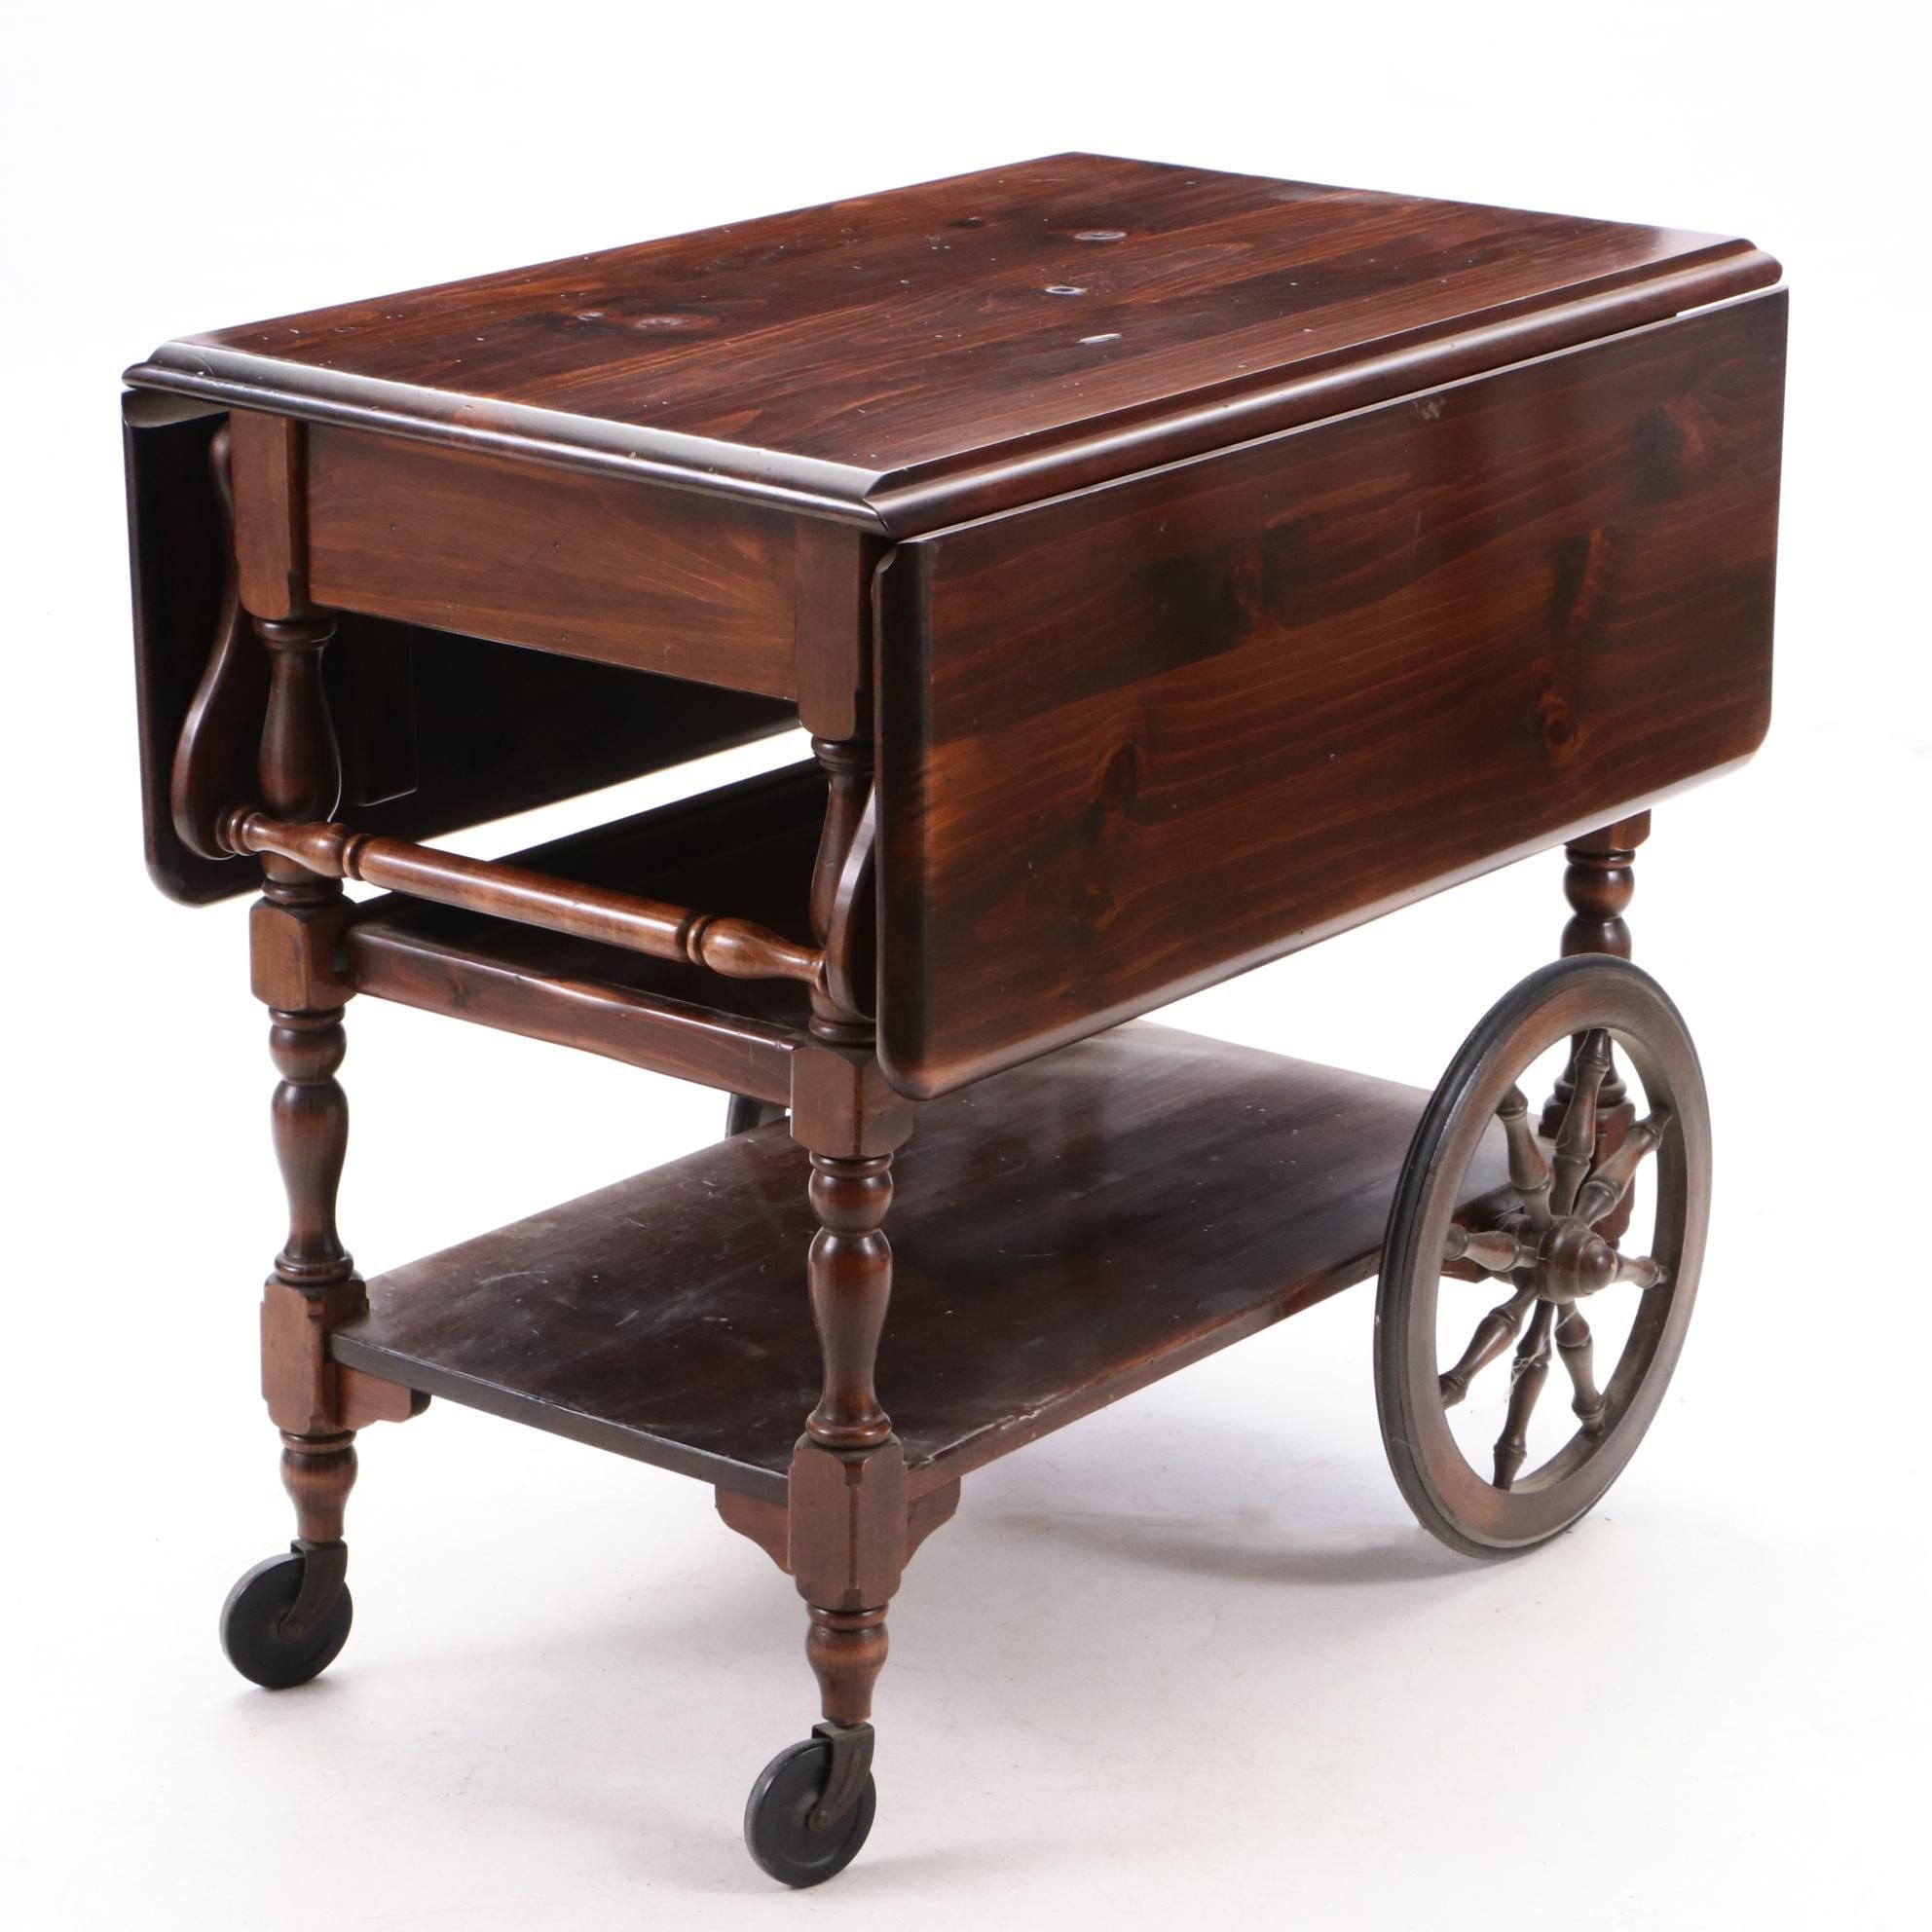 Federal Style Mahogany Bar Cart with Drop Leaves, by Ethan Allen, Circa 1970